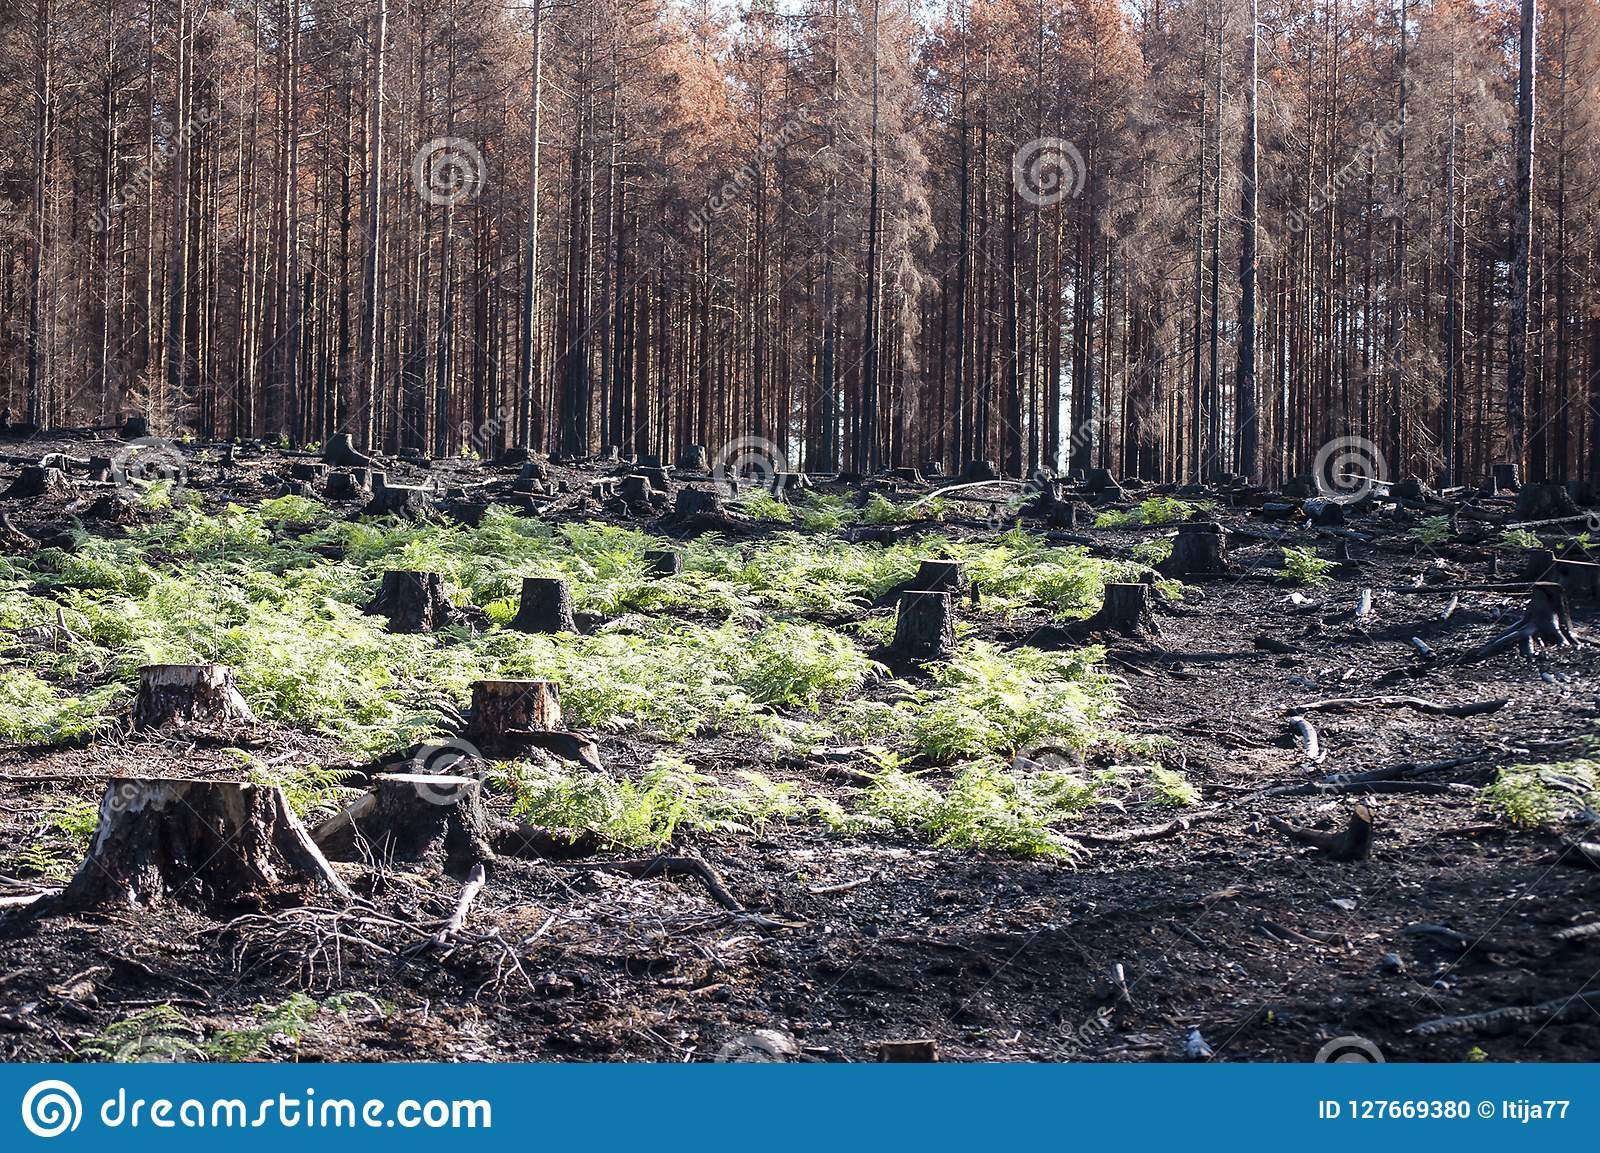 New life with green ferns in sunlight after forest fire